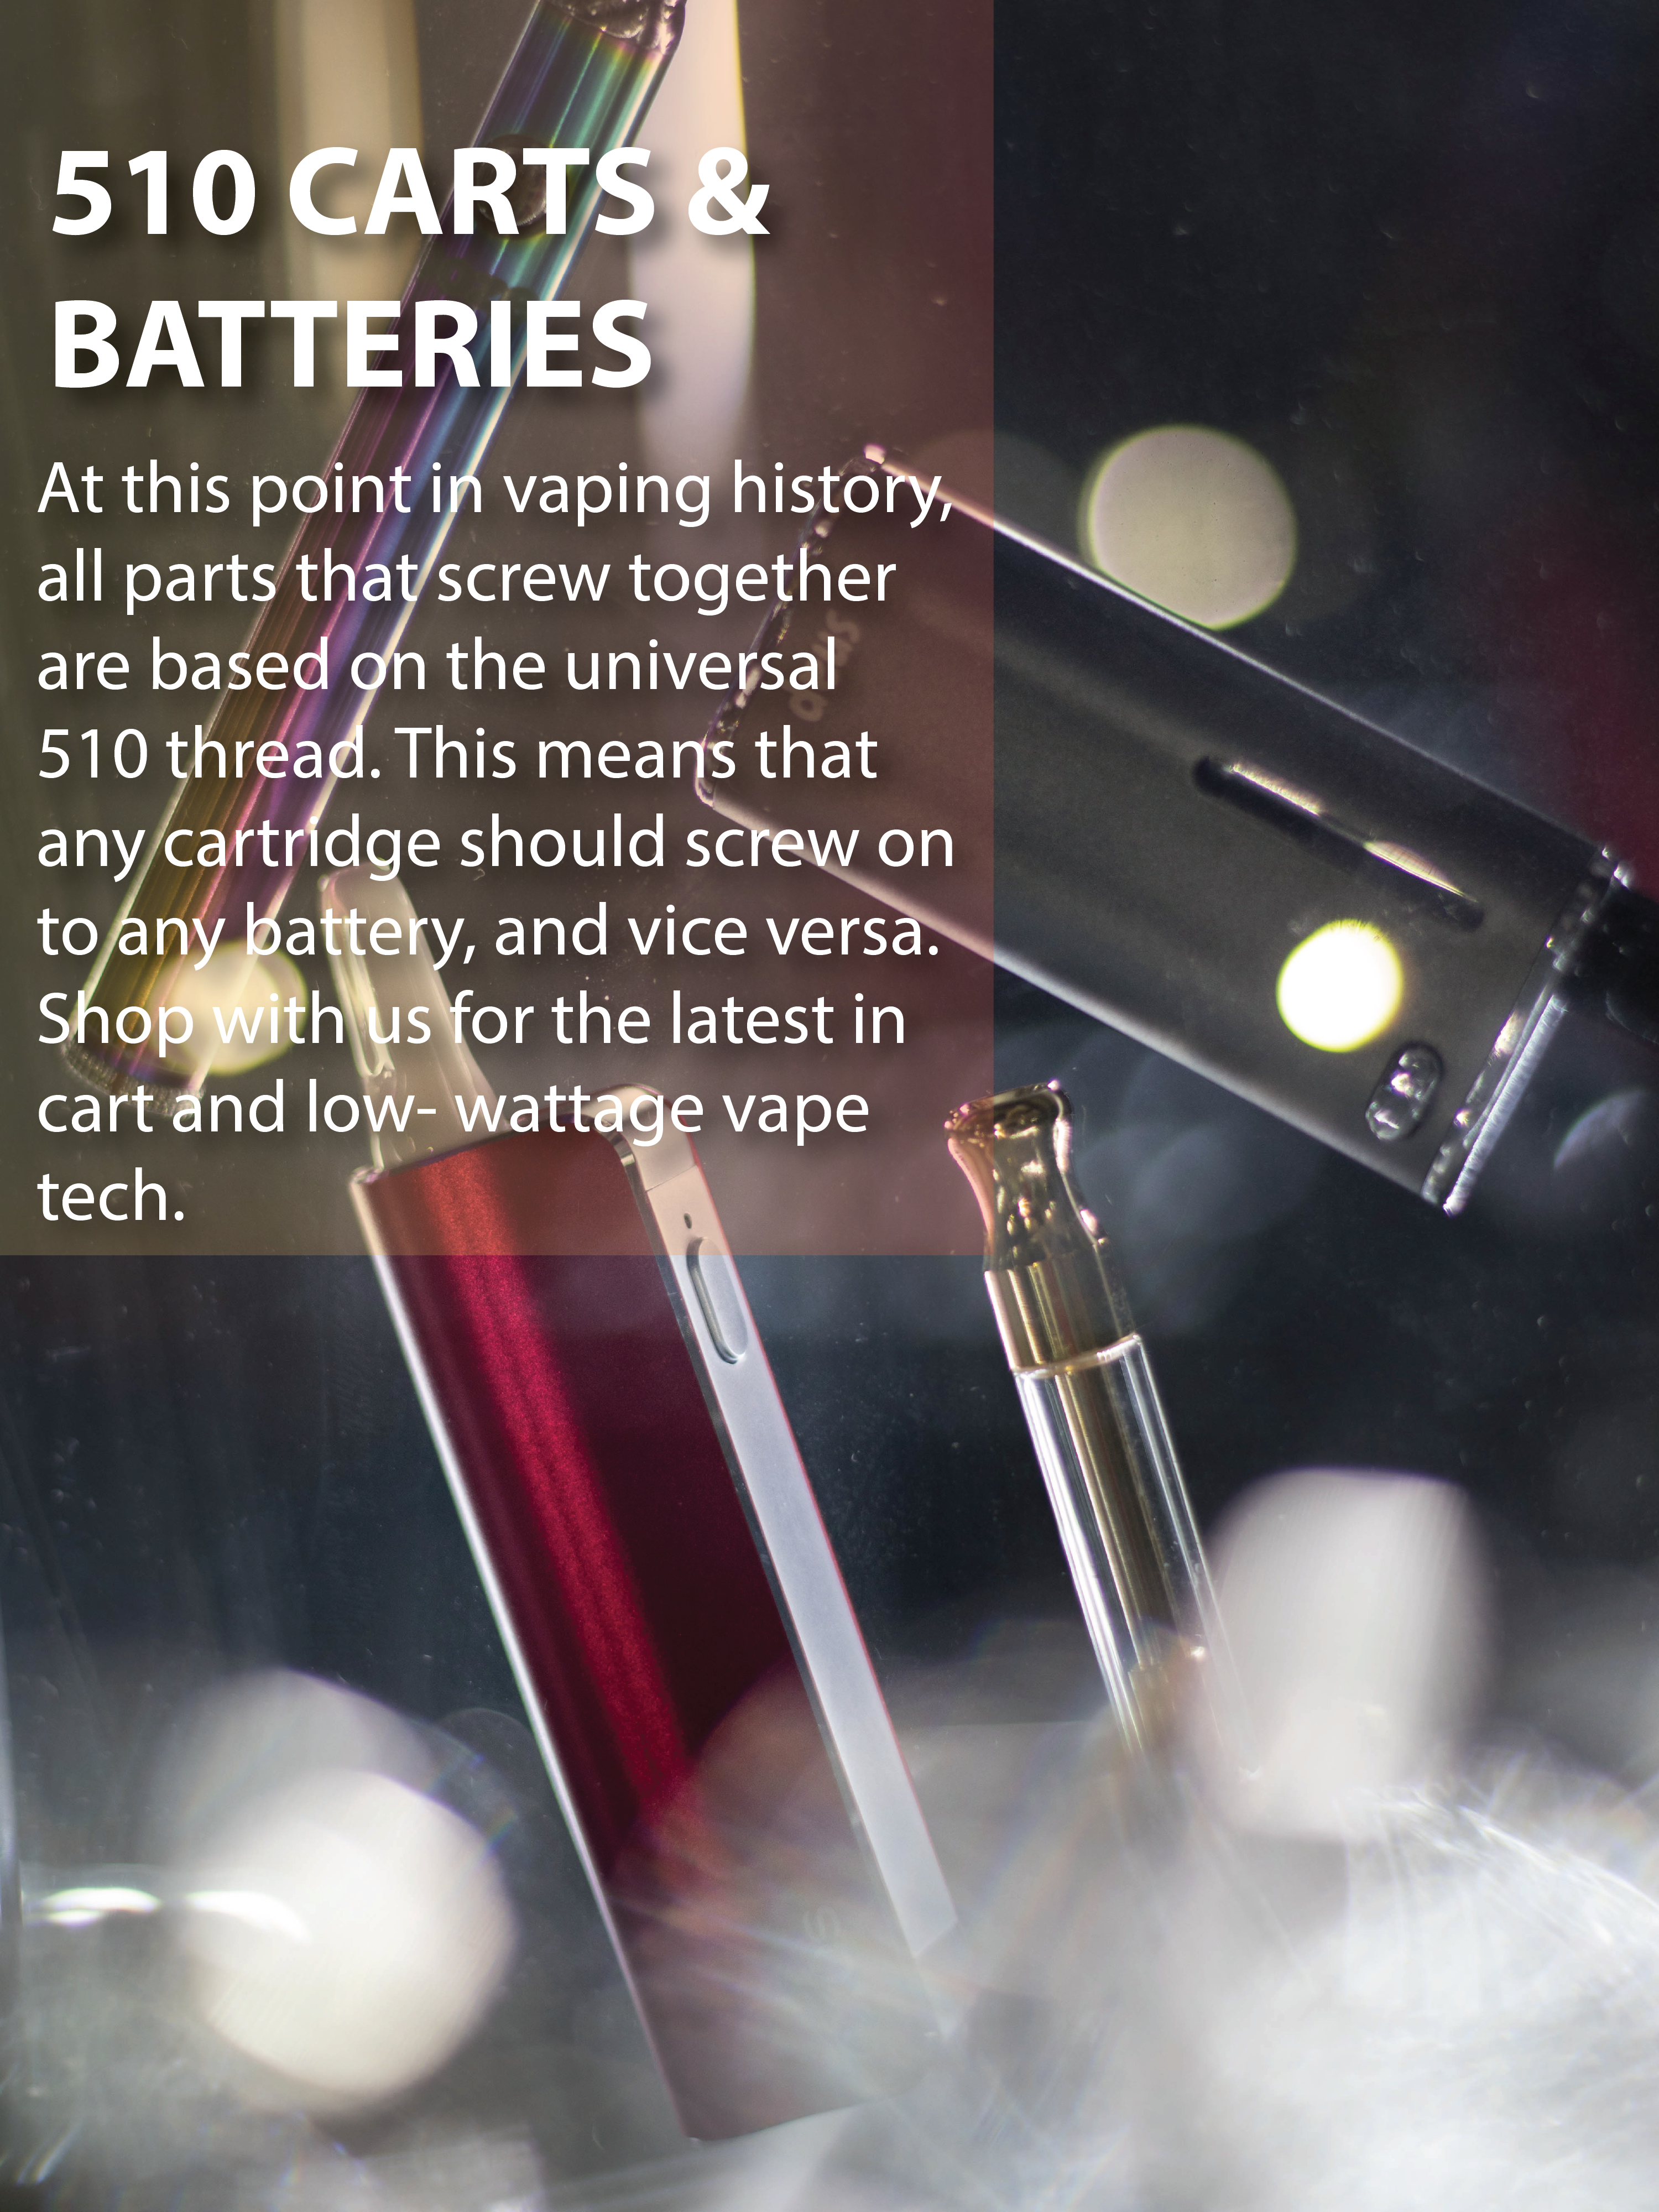 510 Carts and batteries. At this point in vaping history, all parts that screw together are based on the universal 510 thread. This means that any cartridge should screw onto any battery, and vice versa. Shop with us for the latest in cart and low-wattage vape tech.